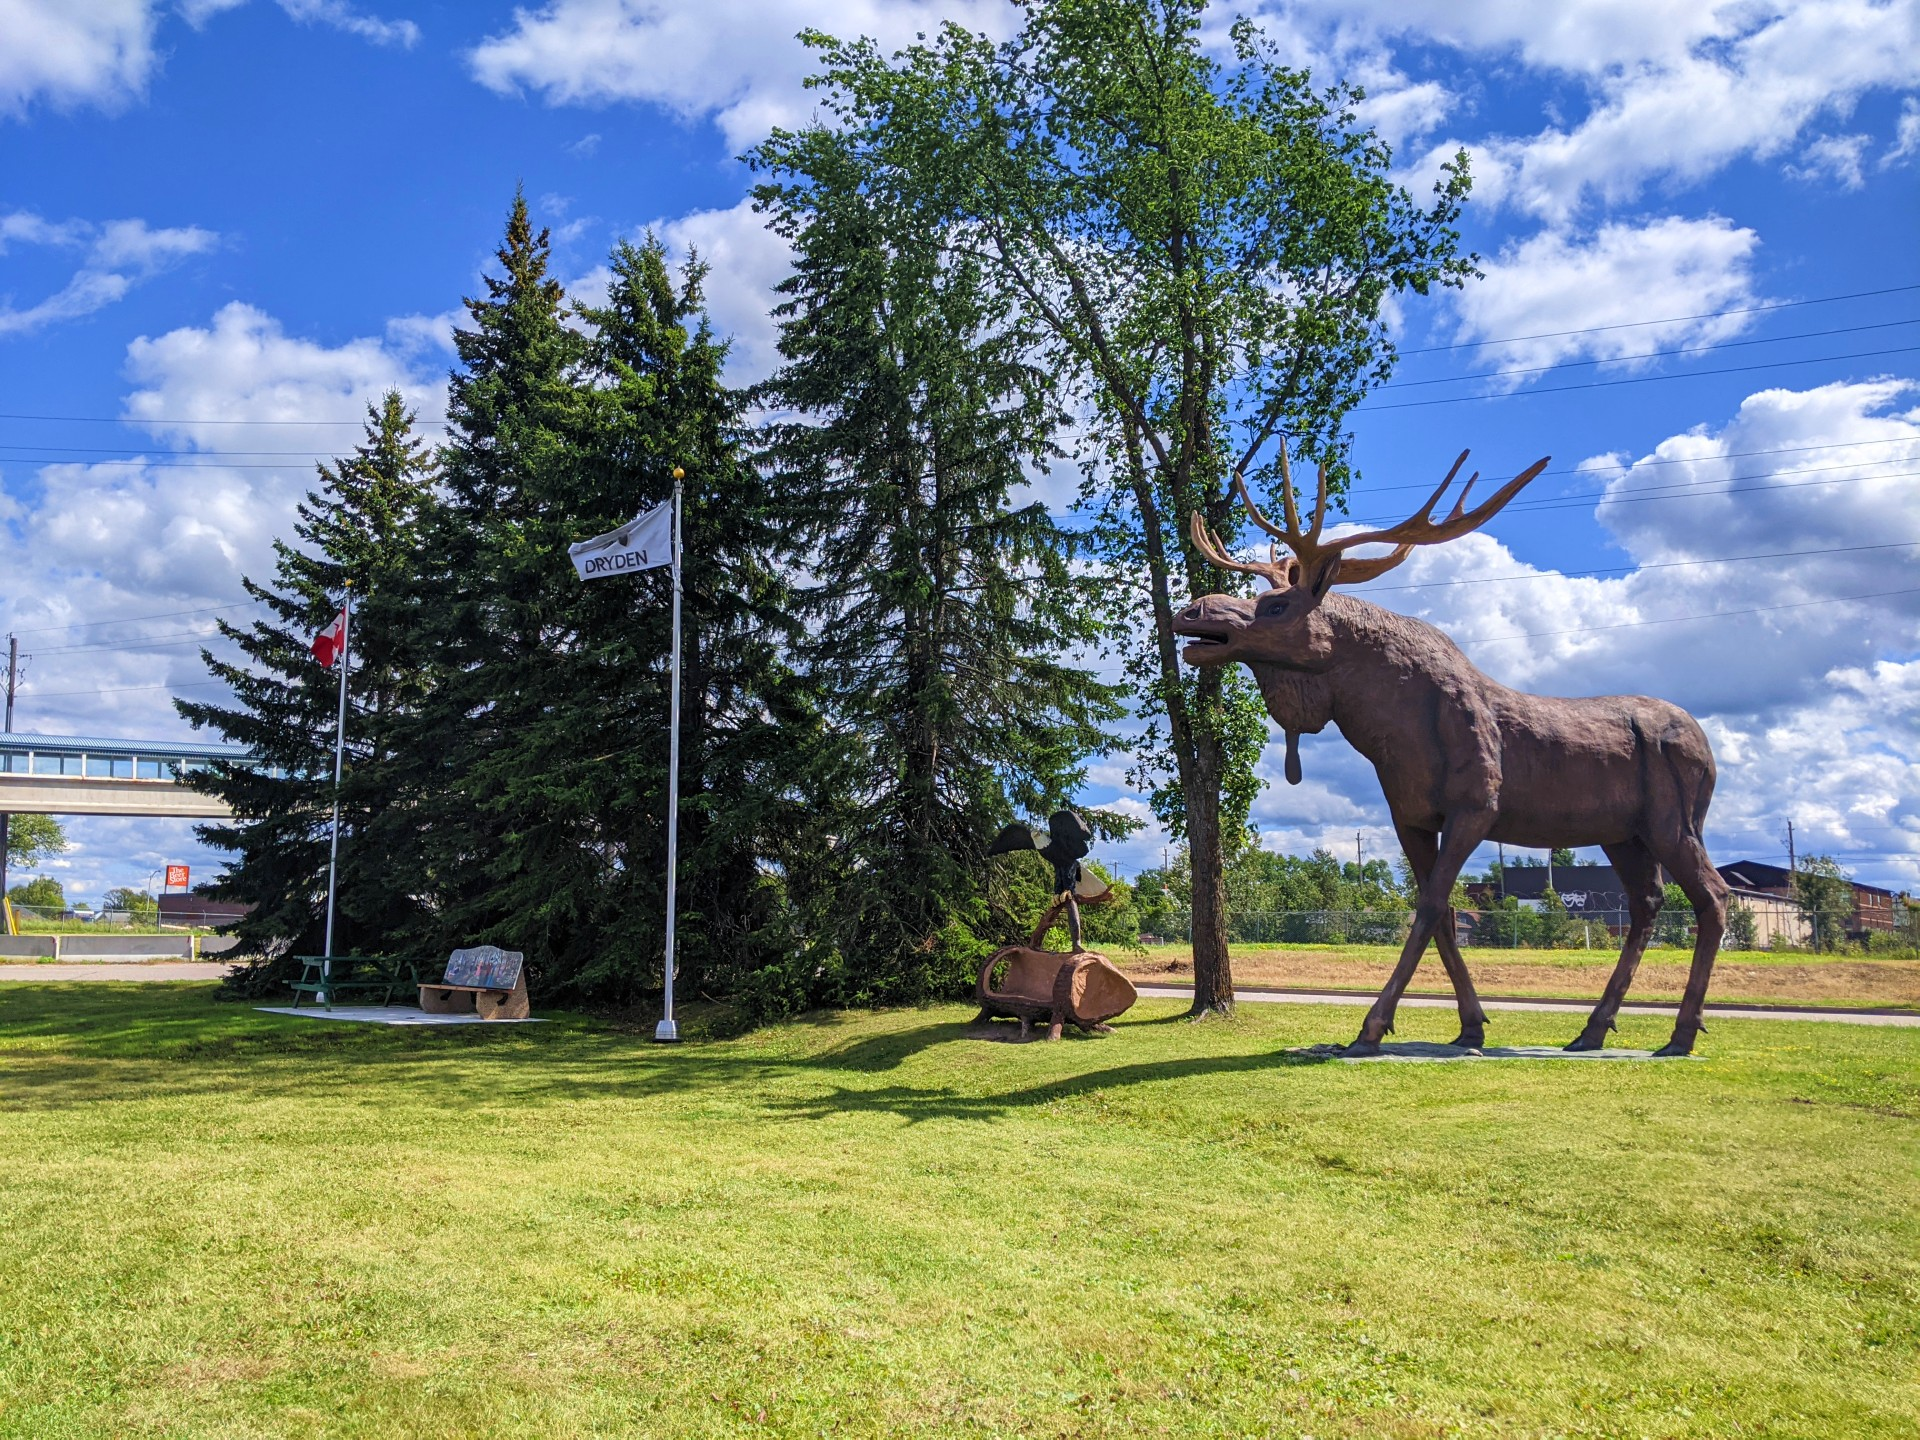 Large moose statue on the right side known as Max the Moose. Statue of eagle on a log in the middle. Dryden flag and Canadian flag on the left.